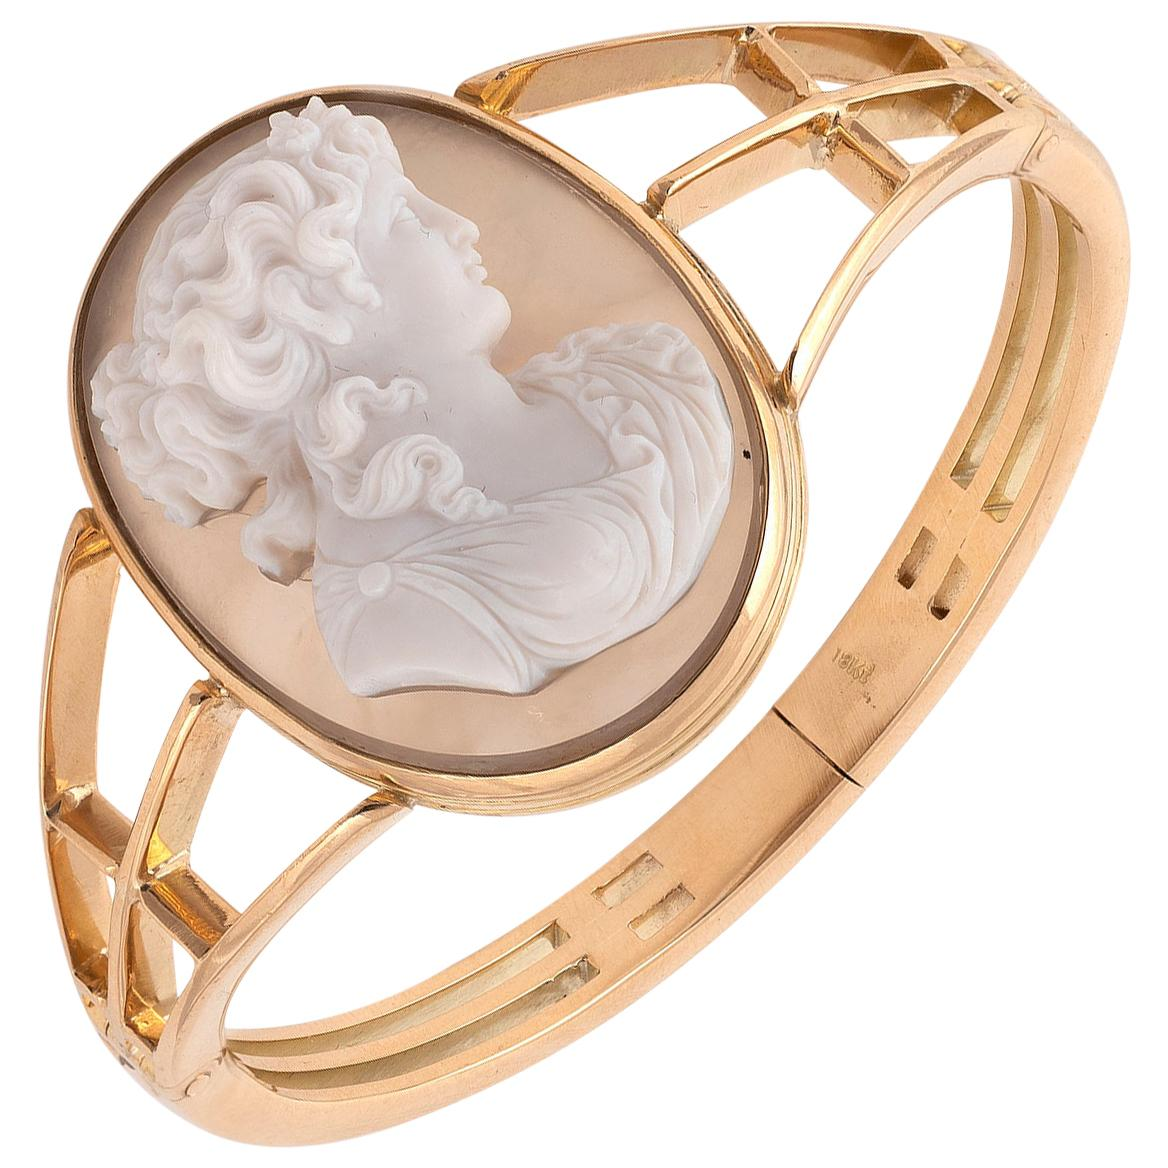 Antique 2-Layer Agate Cameo Bangle Bracelet, Late 19th Century